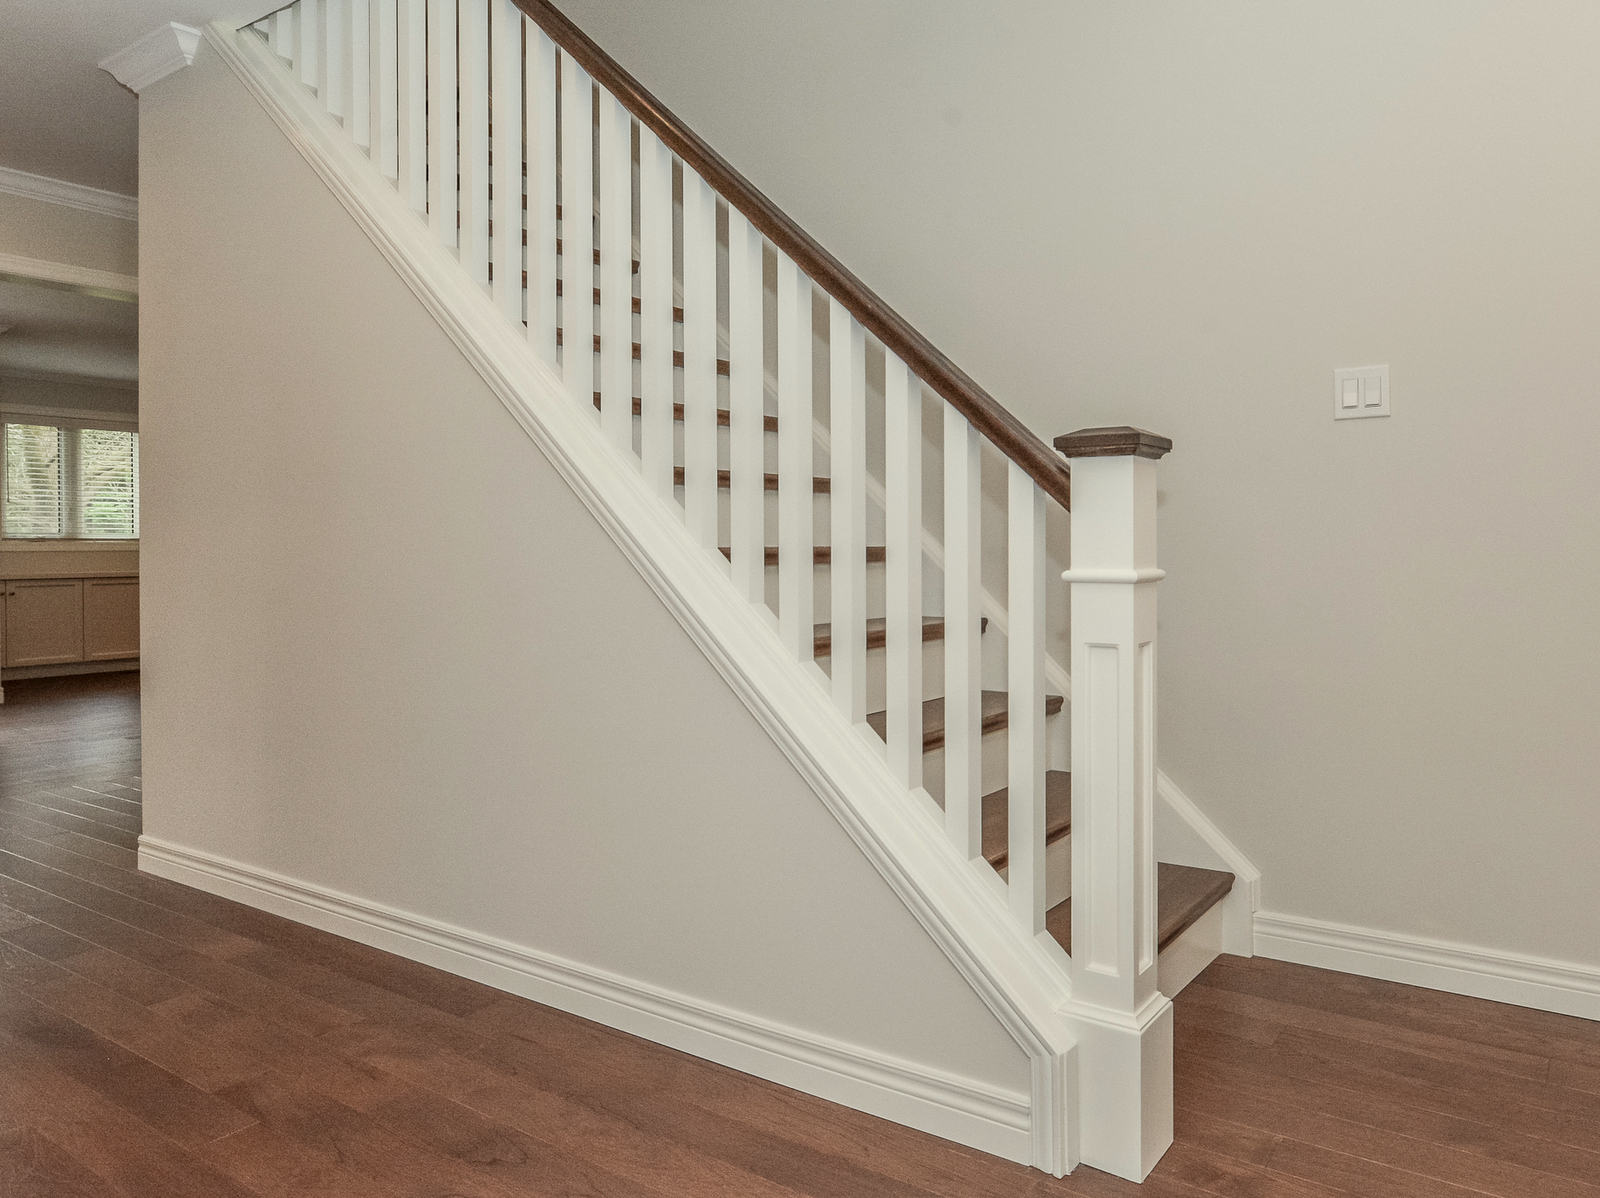 New stair treatment with square spindles, oak railing and treads.